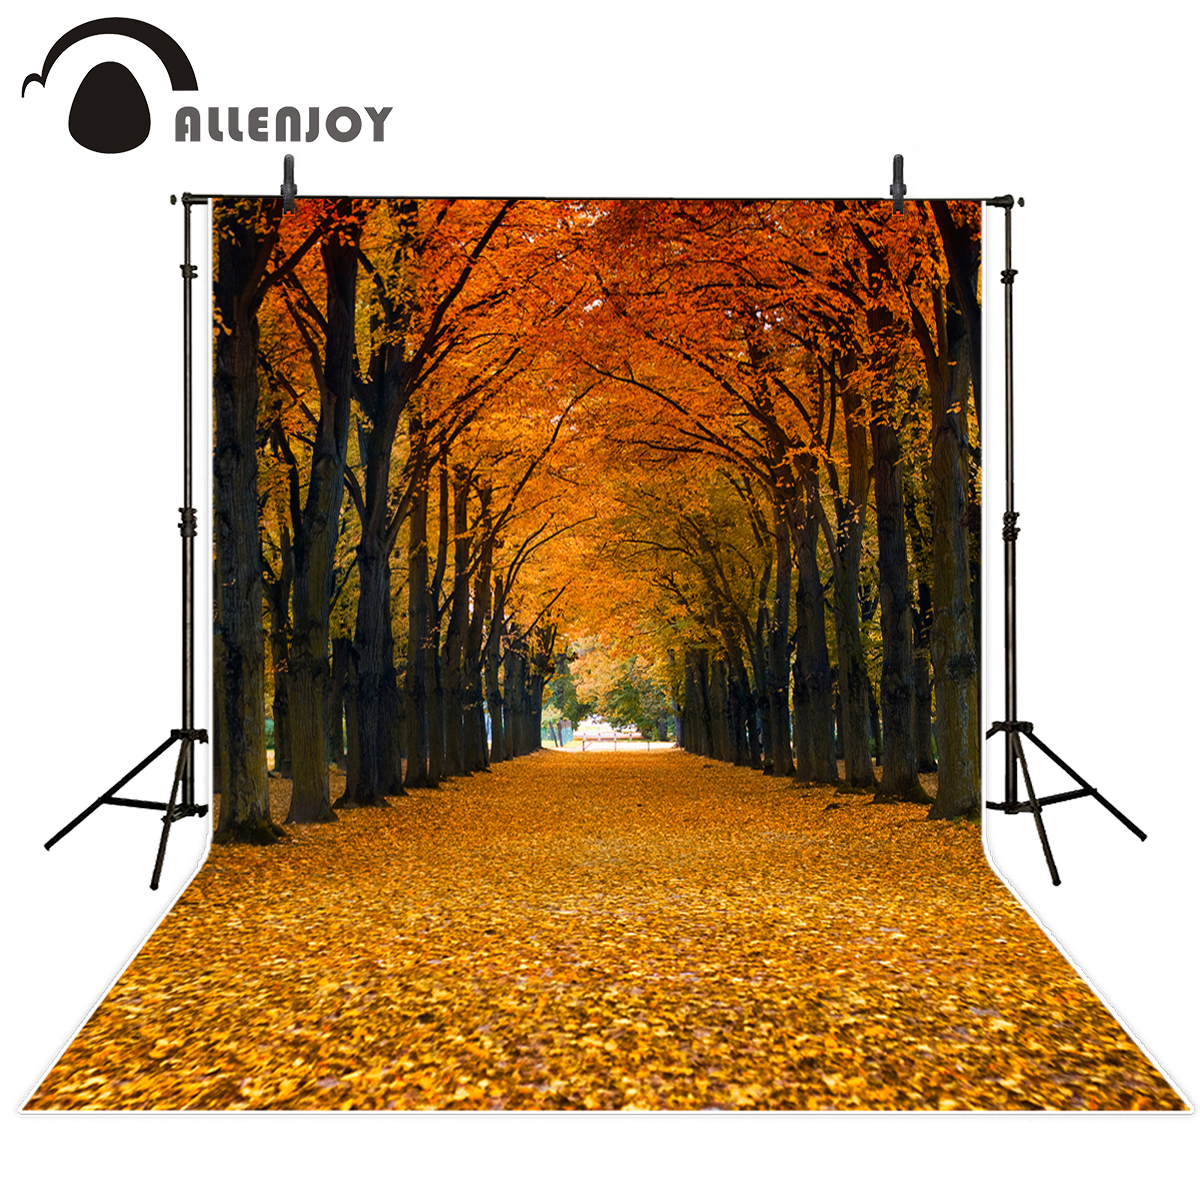 Allenjoy vinyl photographic background Woods fall leaves beautiful yellow road new backdrop photocall photo printed customize